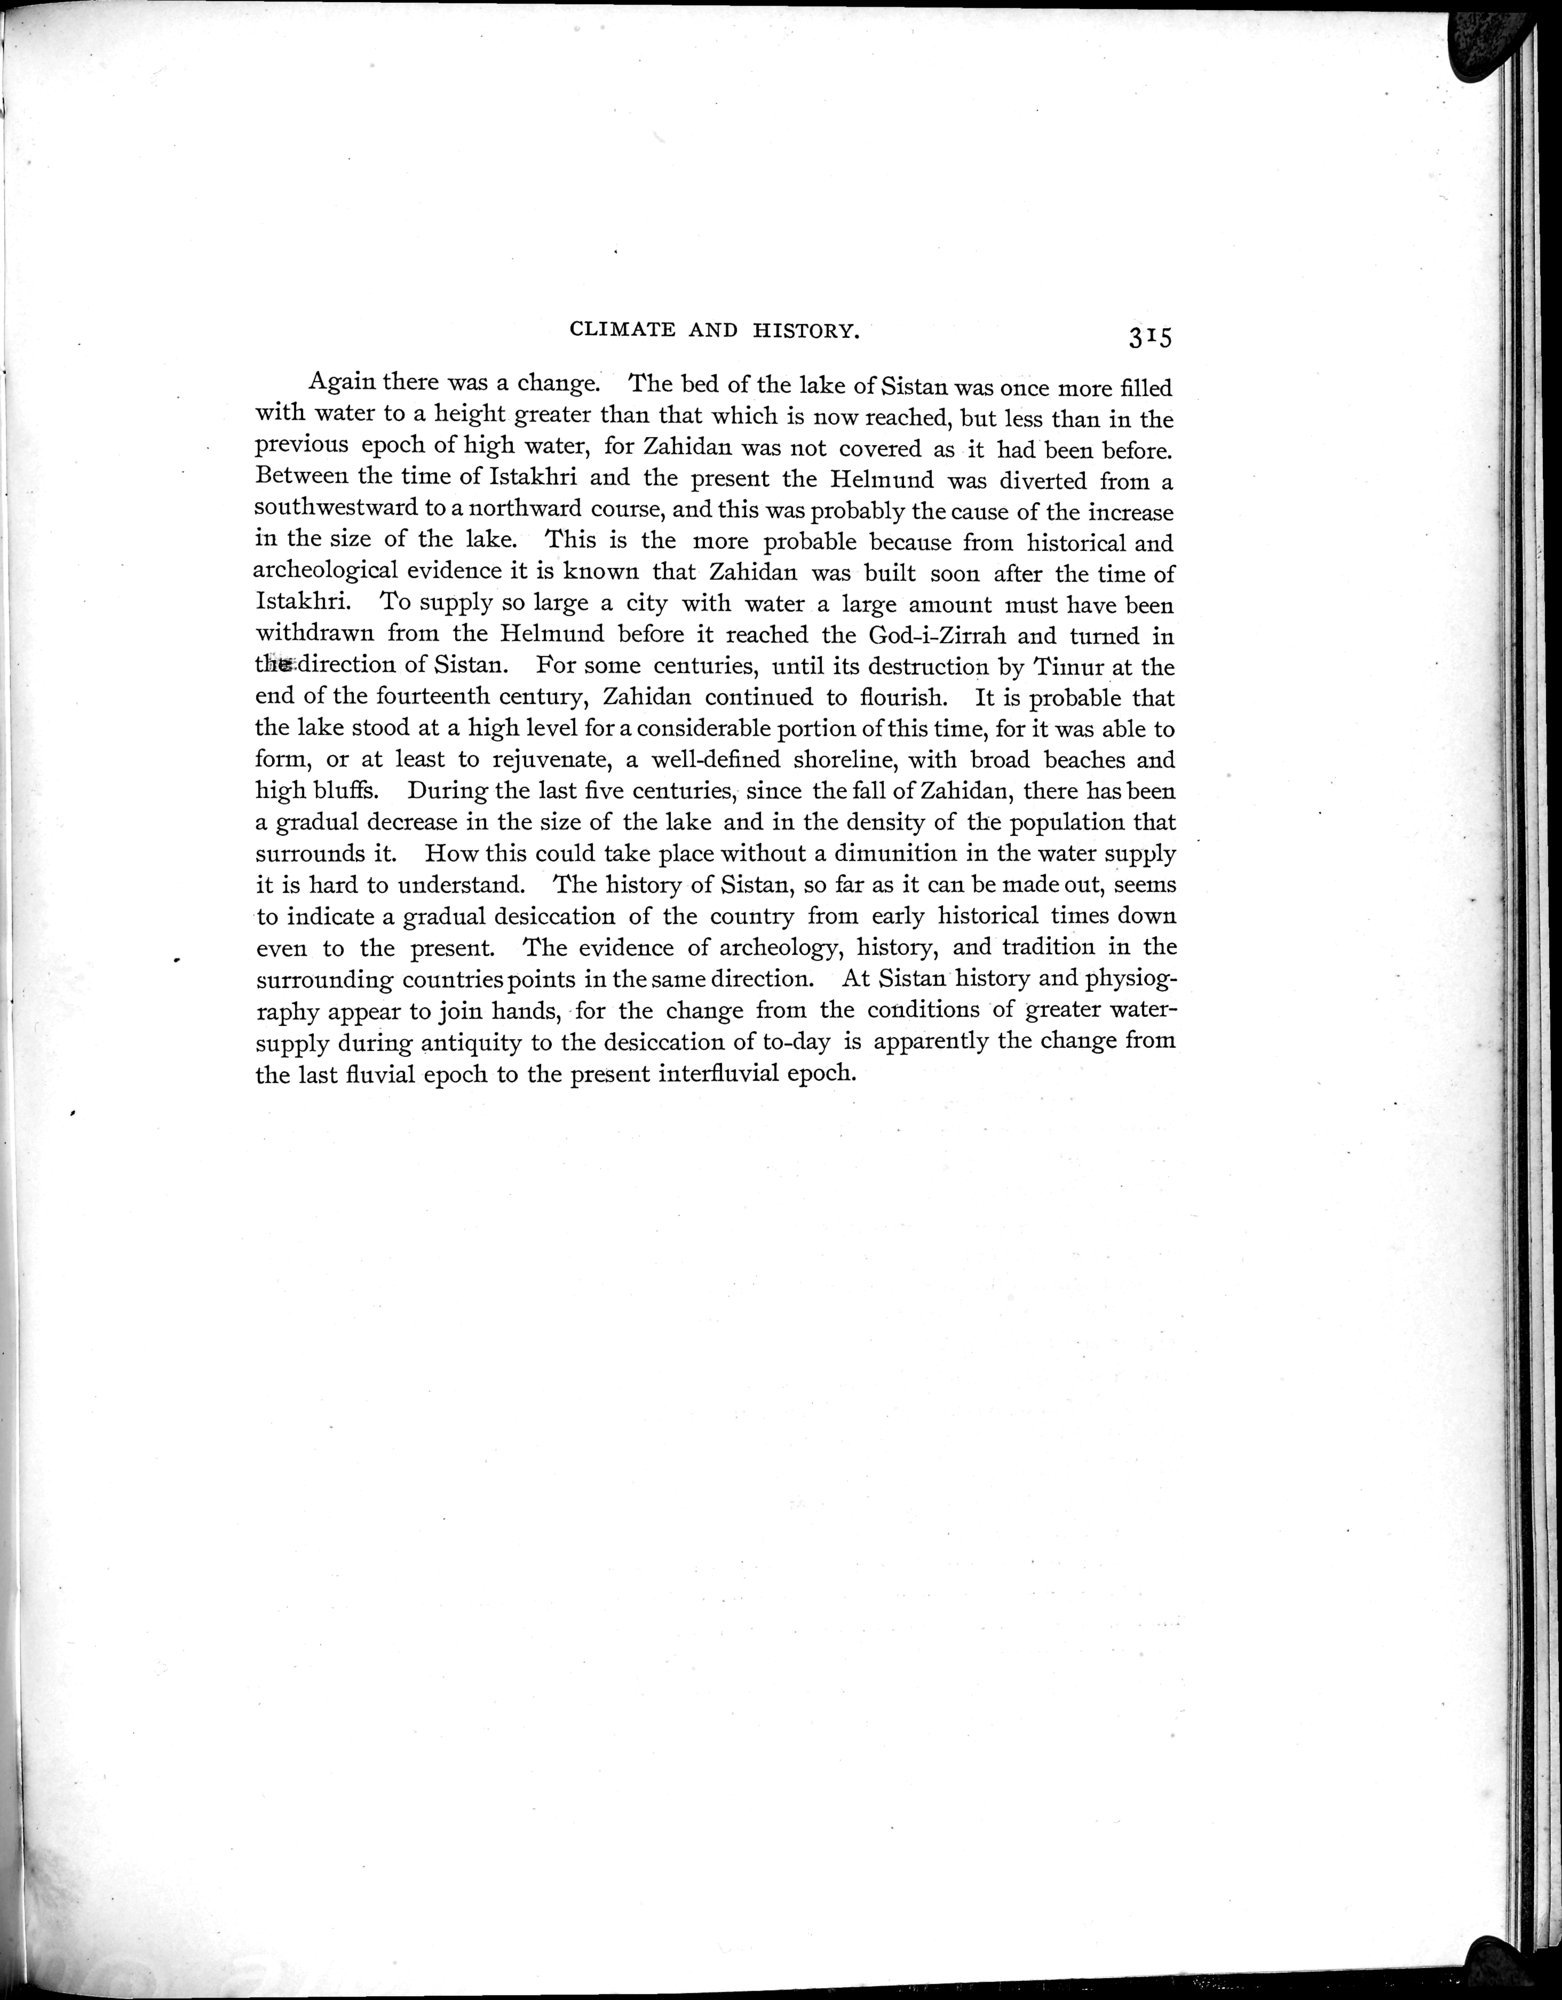 Explorations in Turkestan 1903 : vol.1 / Page 351 (Grayscale High Resolution Image)